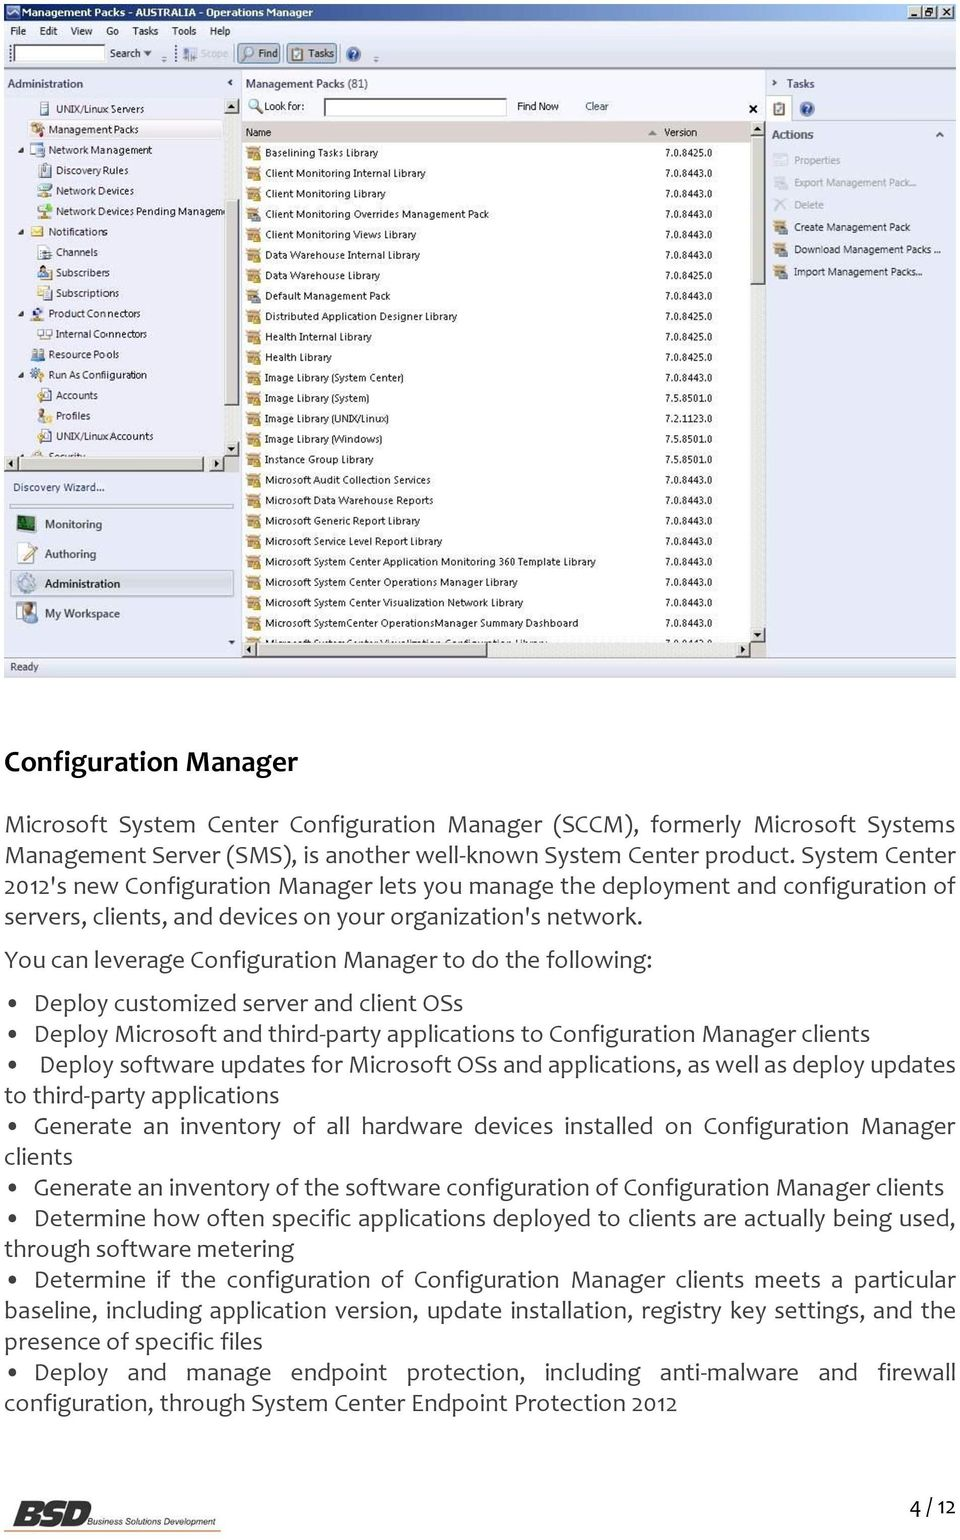 You can leverage Configuration Manager to do the following: Deploy customized server and client OSs Deploy Microsoft and third-party applications to Configuration Manager clients Deploy software